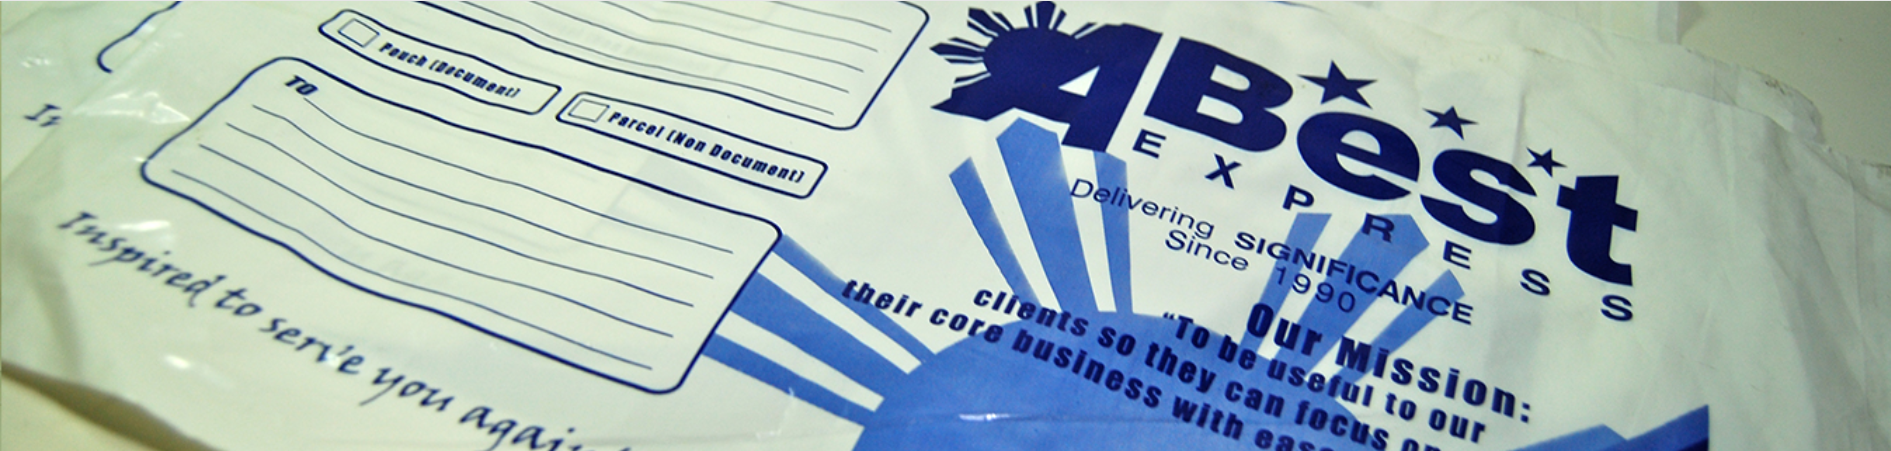 courier services in the philippines - ABest Express